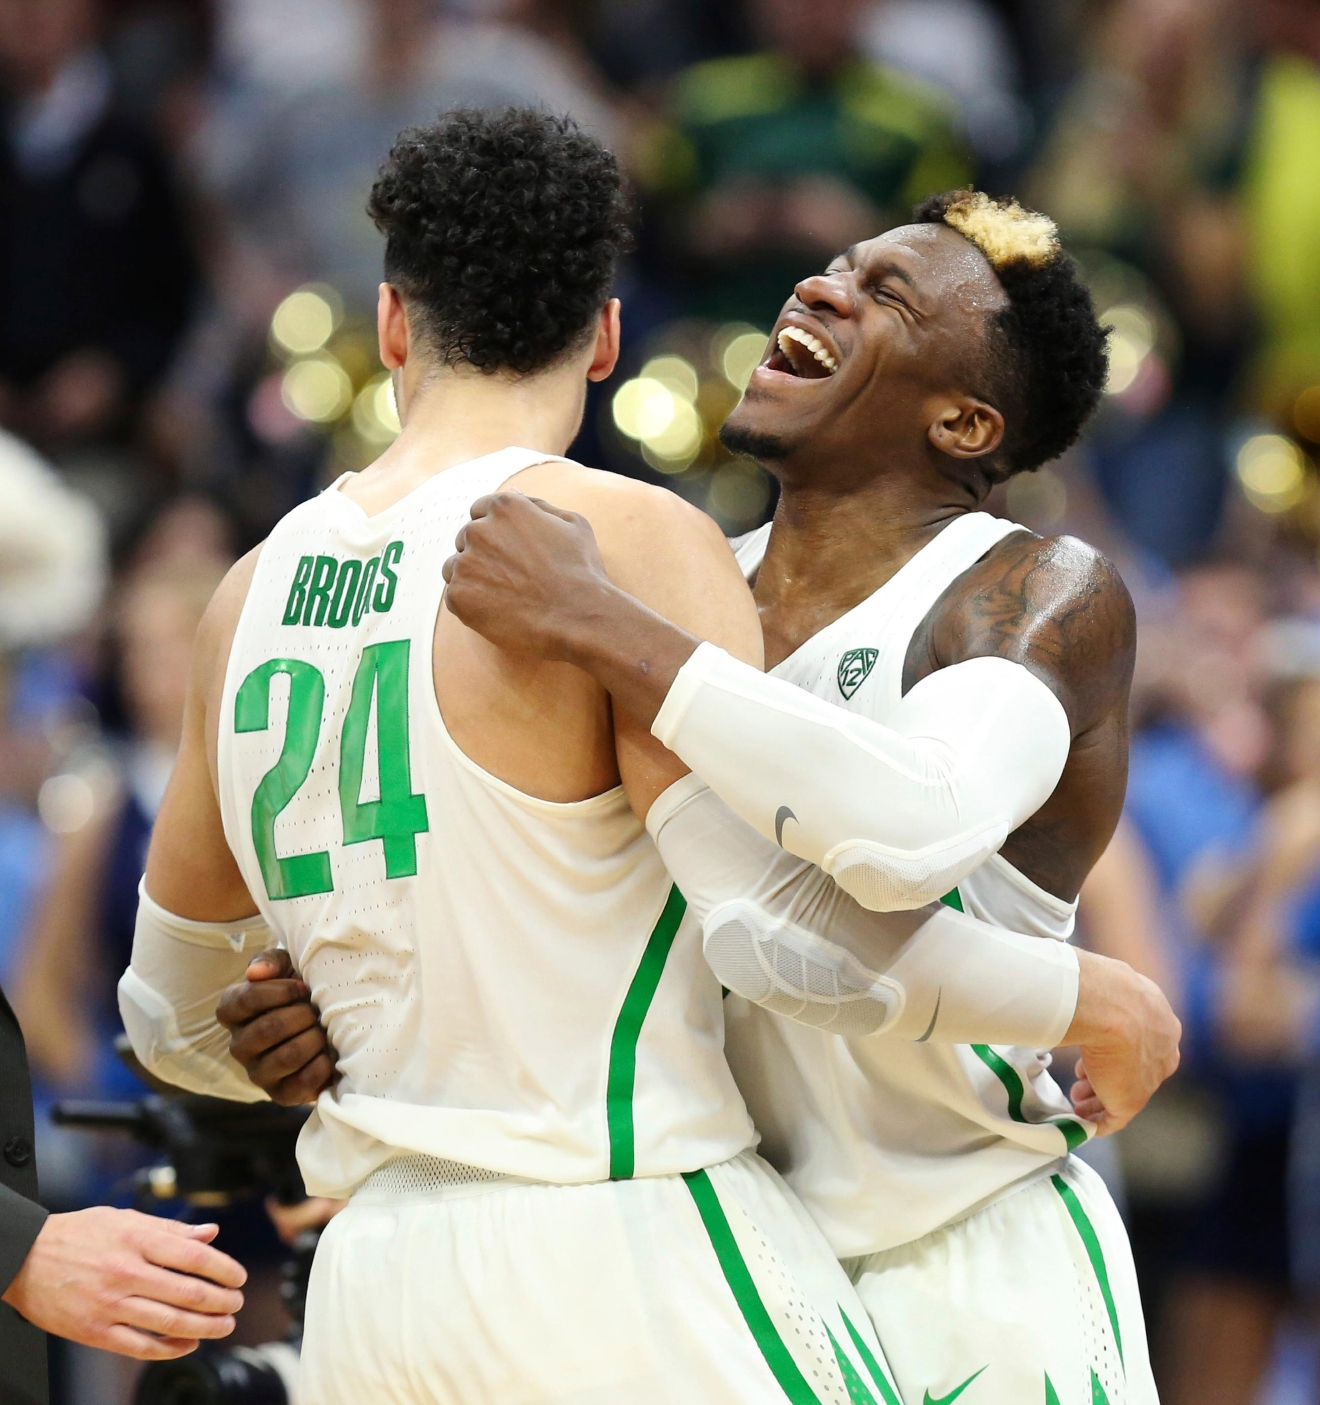 Oregon forward Dillon Brooks (24) and teammate Dylan Ennis (31) celebrate their win over Rhode Island during a second-round game in the NCAA college basketball tournament in Sacramento, Calif., Sunday, March 19, 2017. Oregon won 75-72. (AP Photo/Steve Yeater)